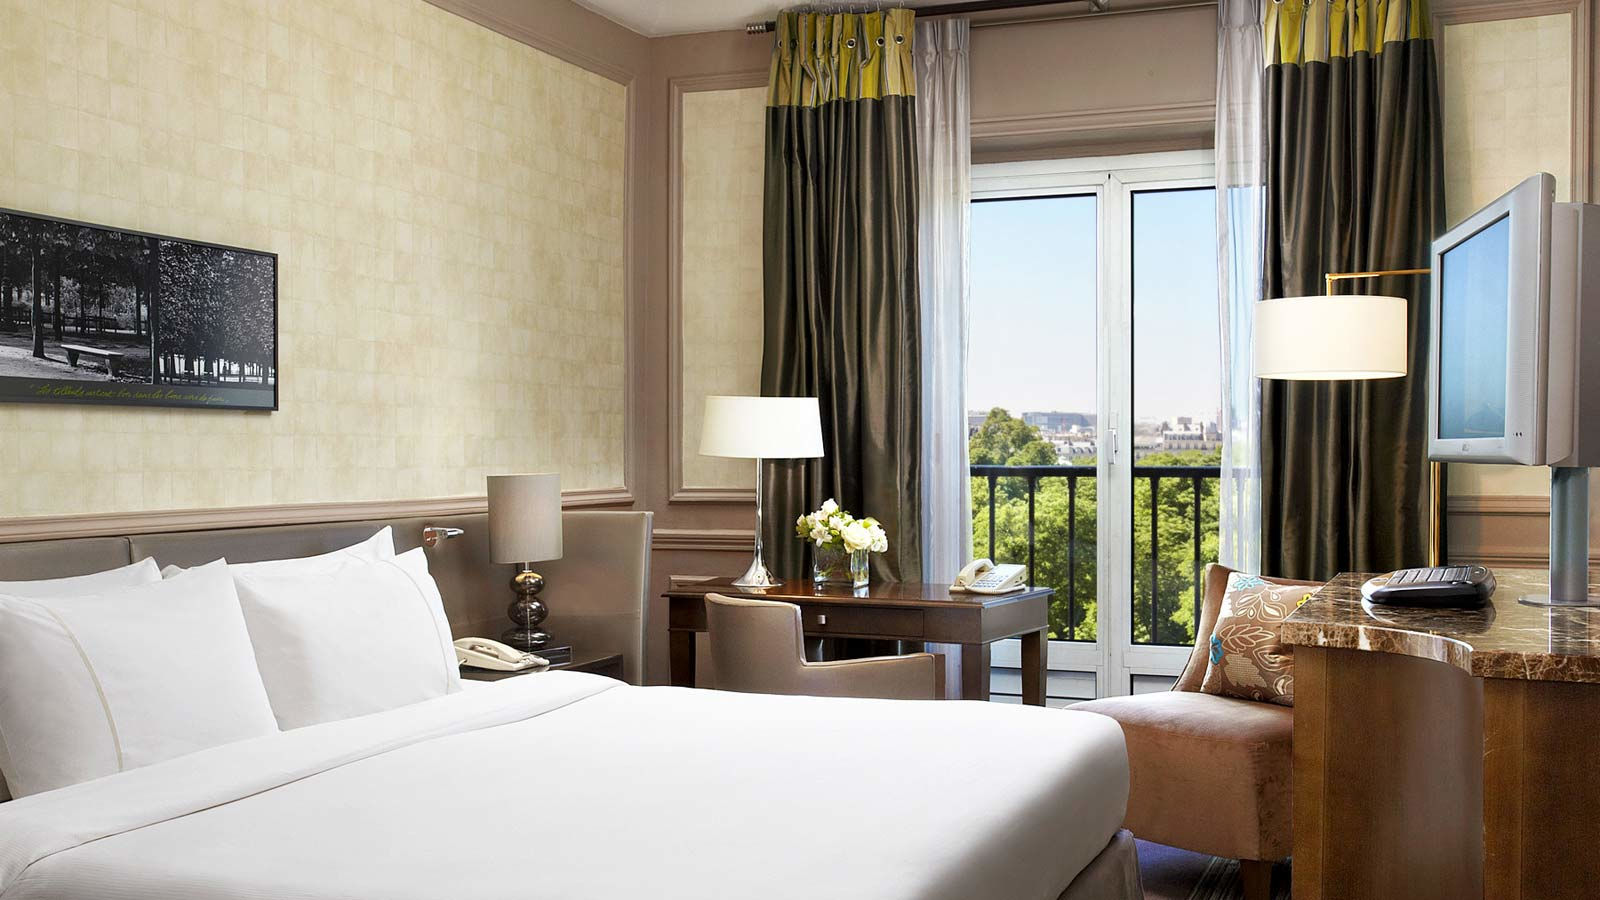 Номер с видом in Westin Paris — Vendôme